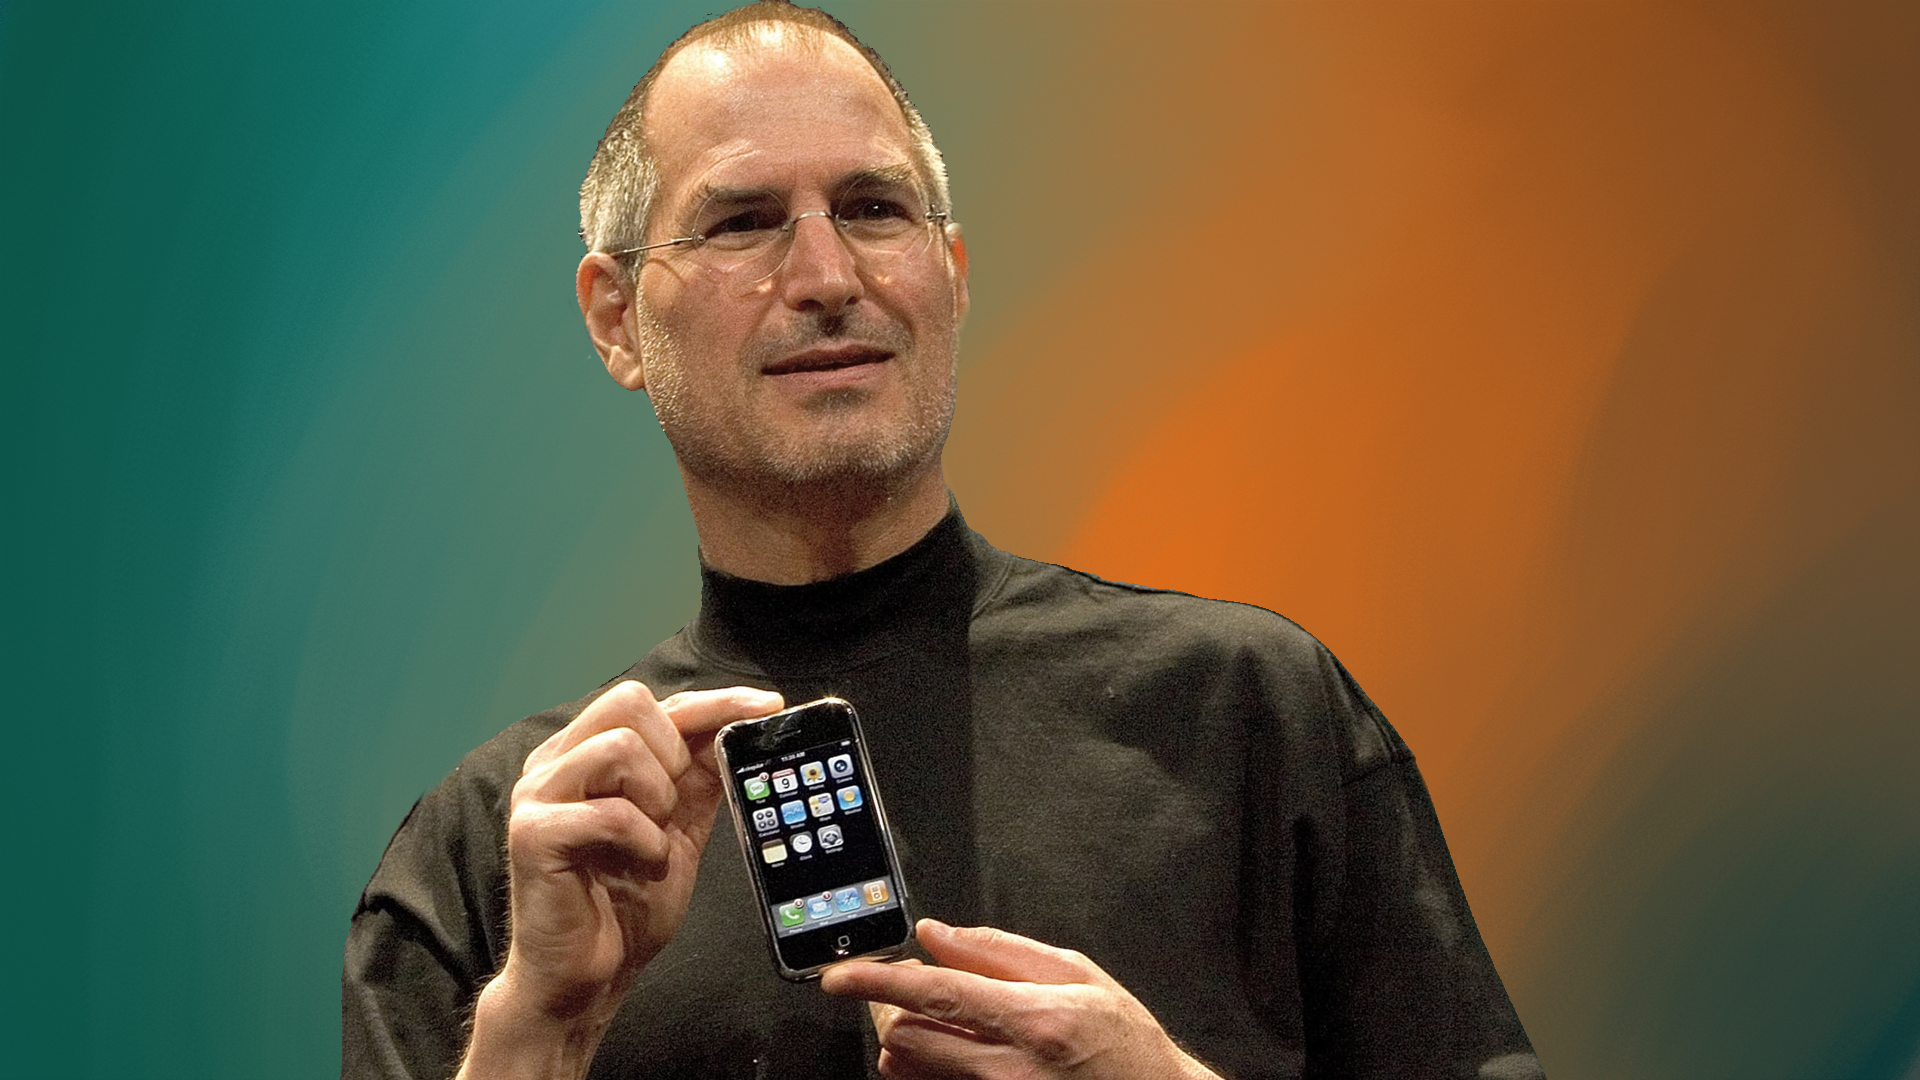 3 Quotes by Steve Jobs to Help Inspire a Life You Love to Live Everyday